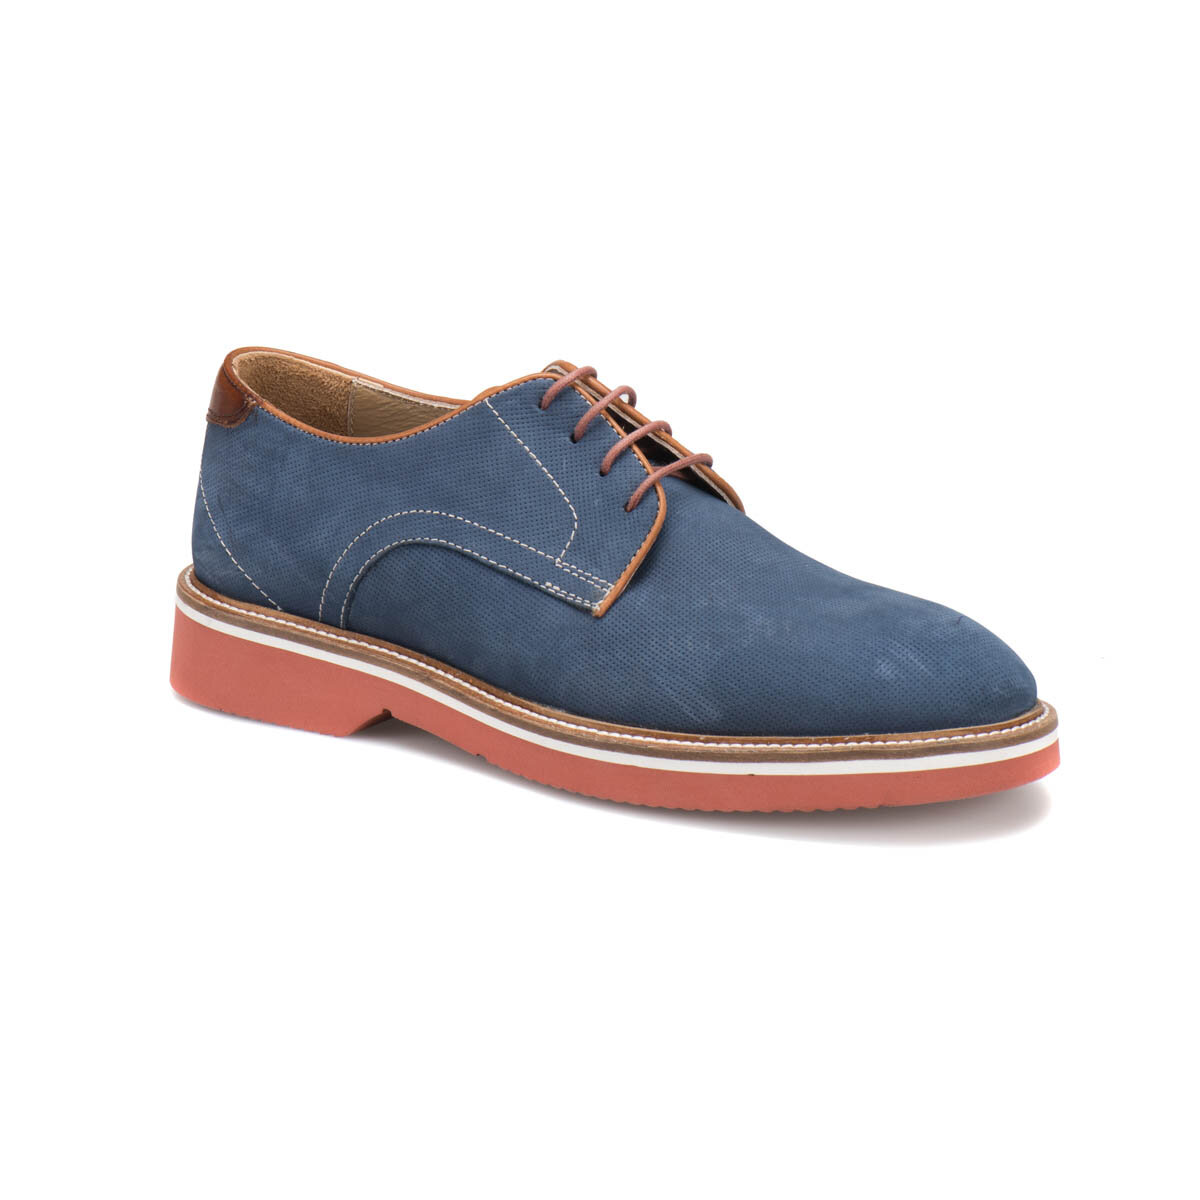 flo-193-m-1506-navy-blue-men-'s-modern-shoes-cordovan